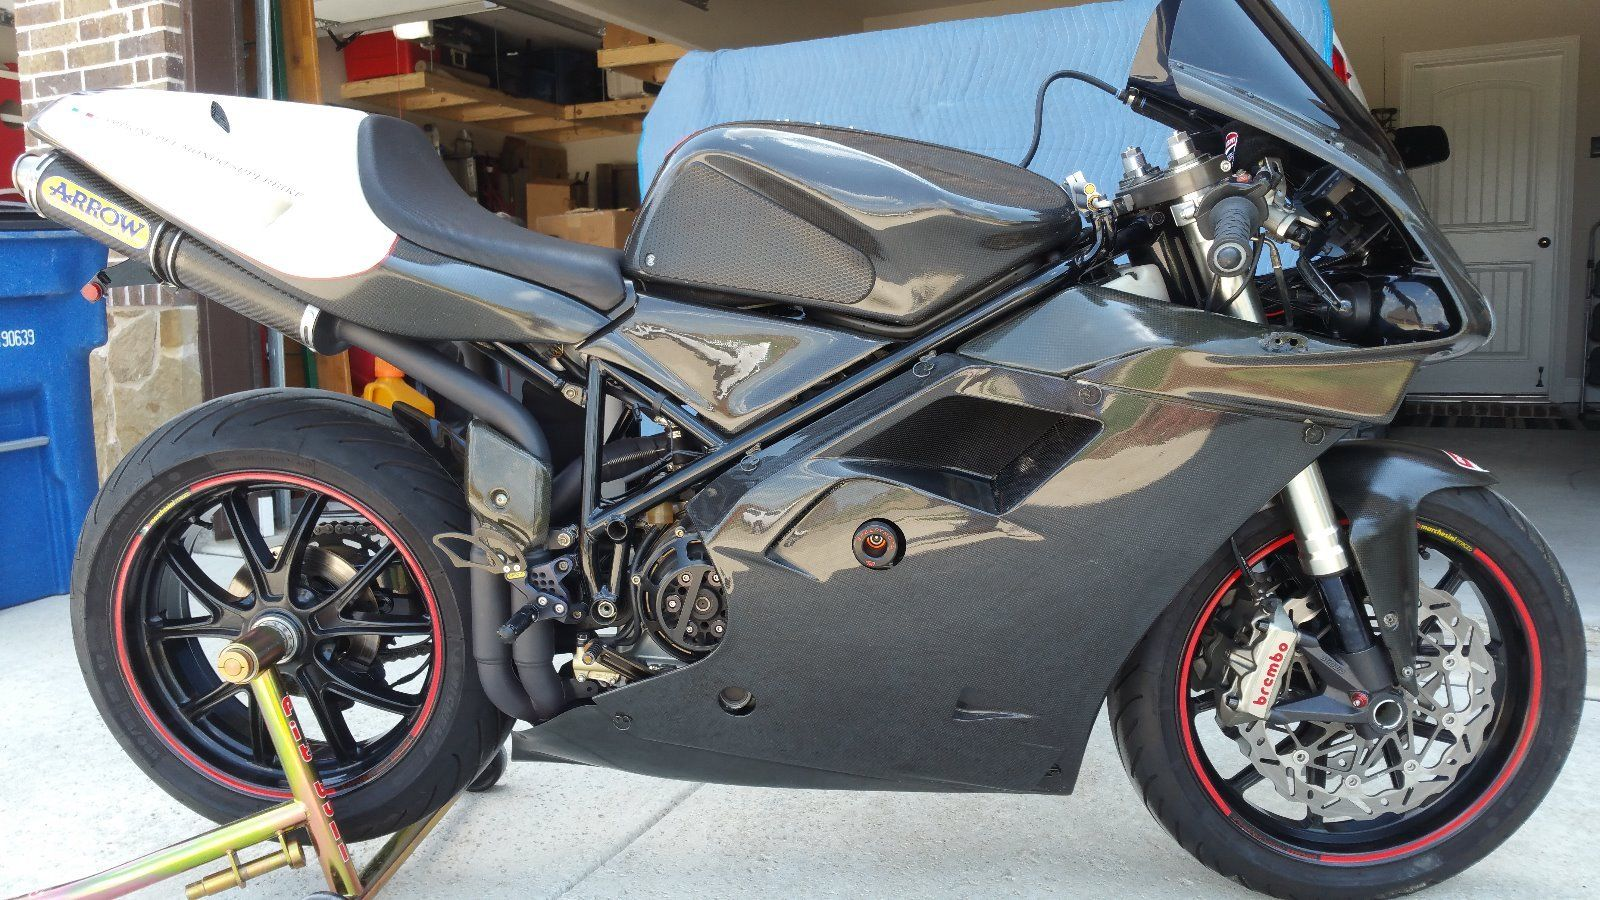 recovered racer 1998 ducati 916 rare sportbikes for sale. Black Bedroom Furniture Sets. Home Design Ideas